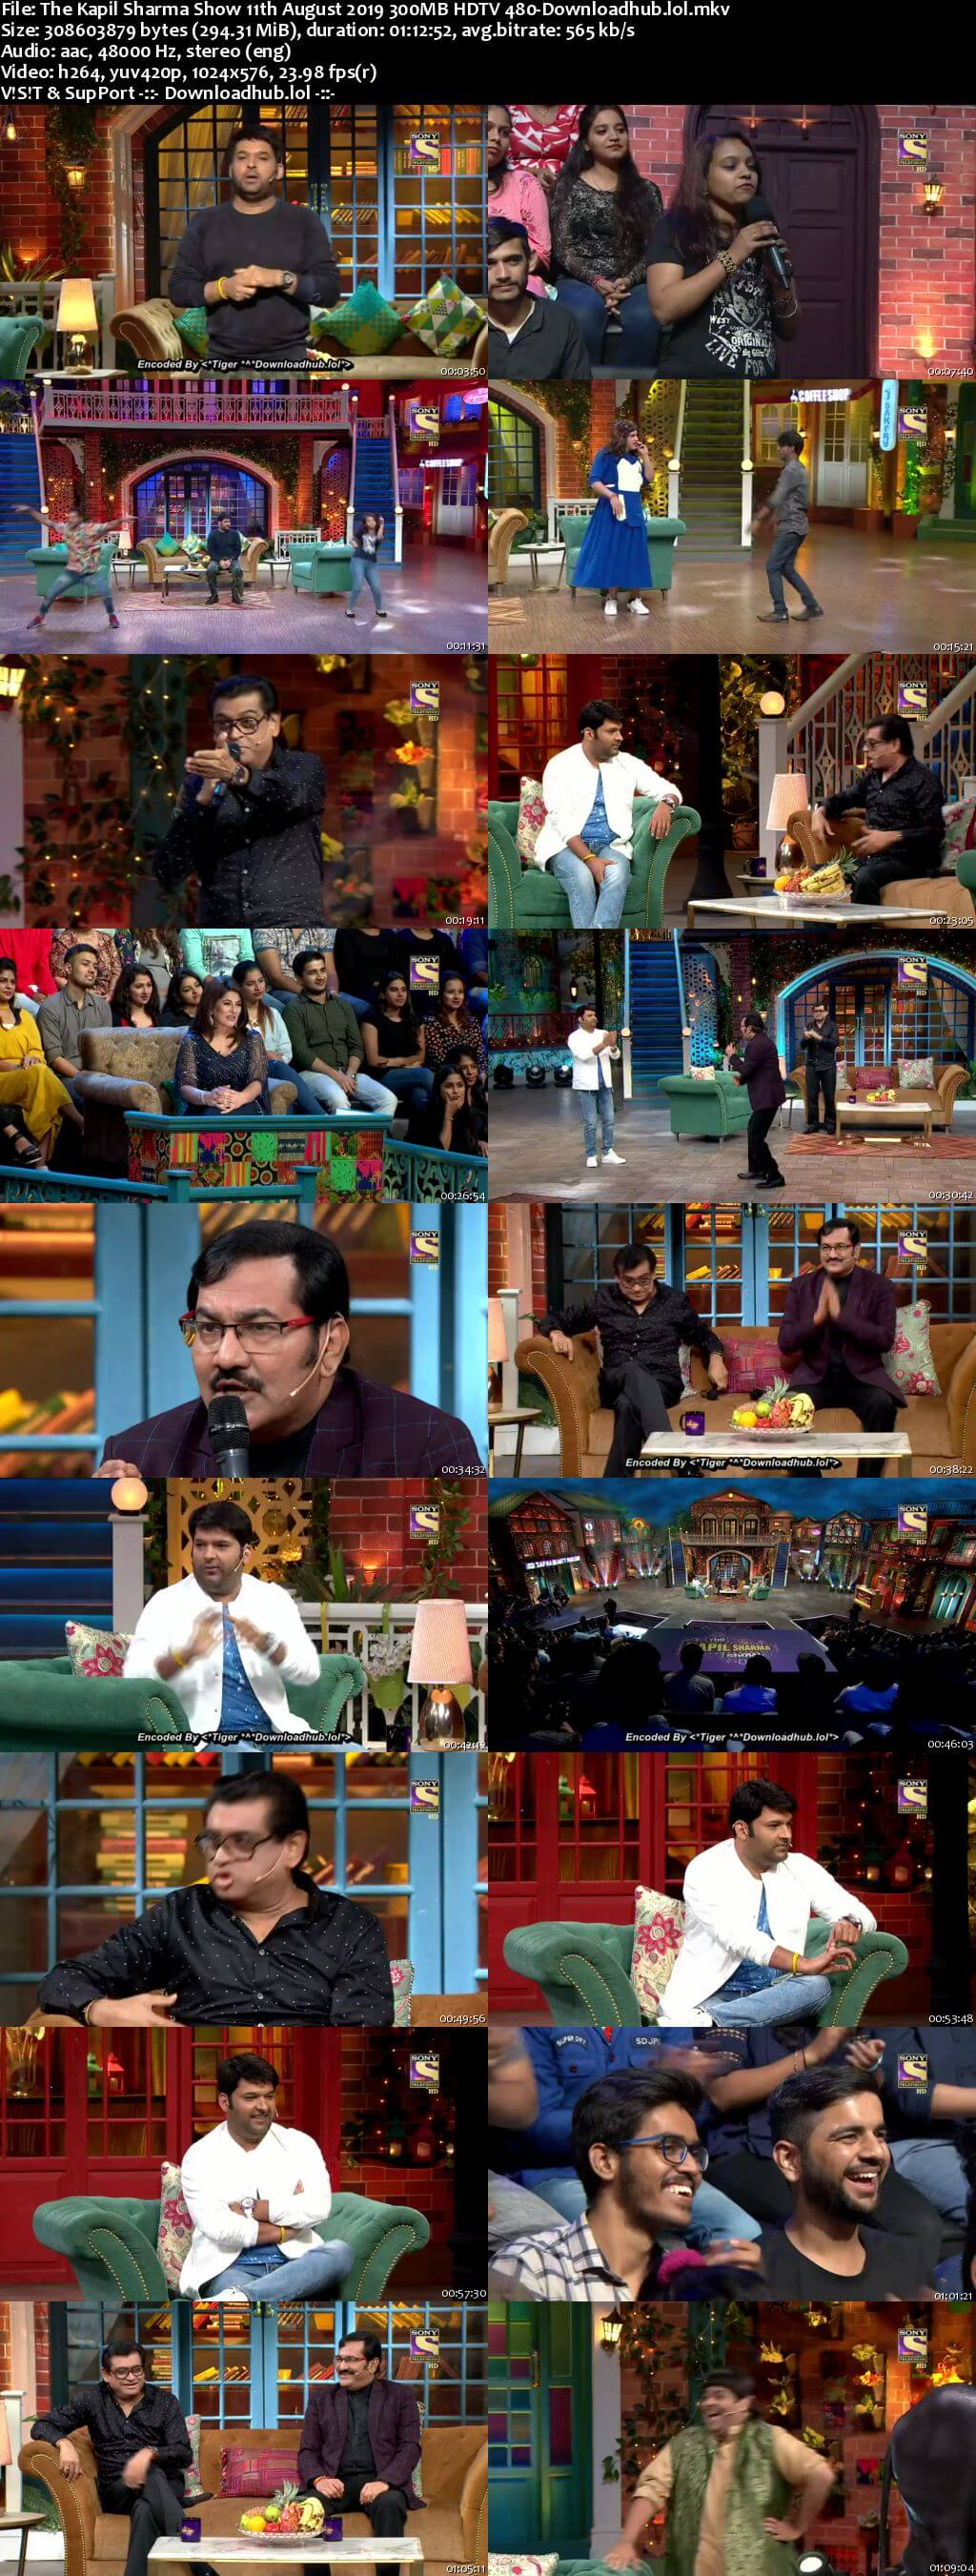 The Kapil Sharma Show 11 August 2019 Episode 65 HDTV 480p